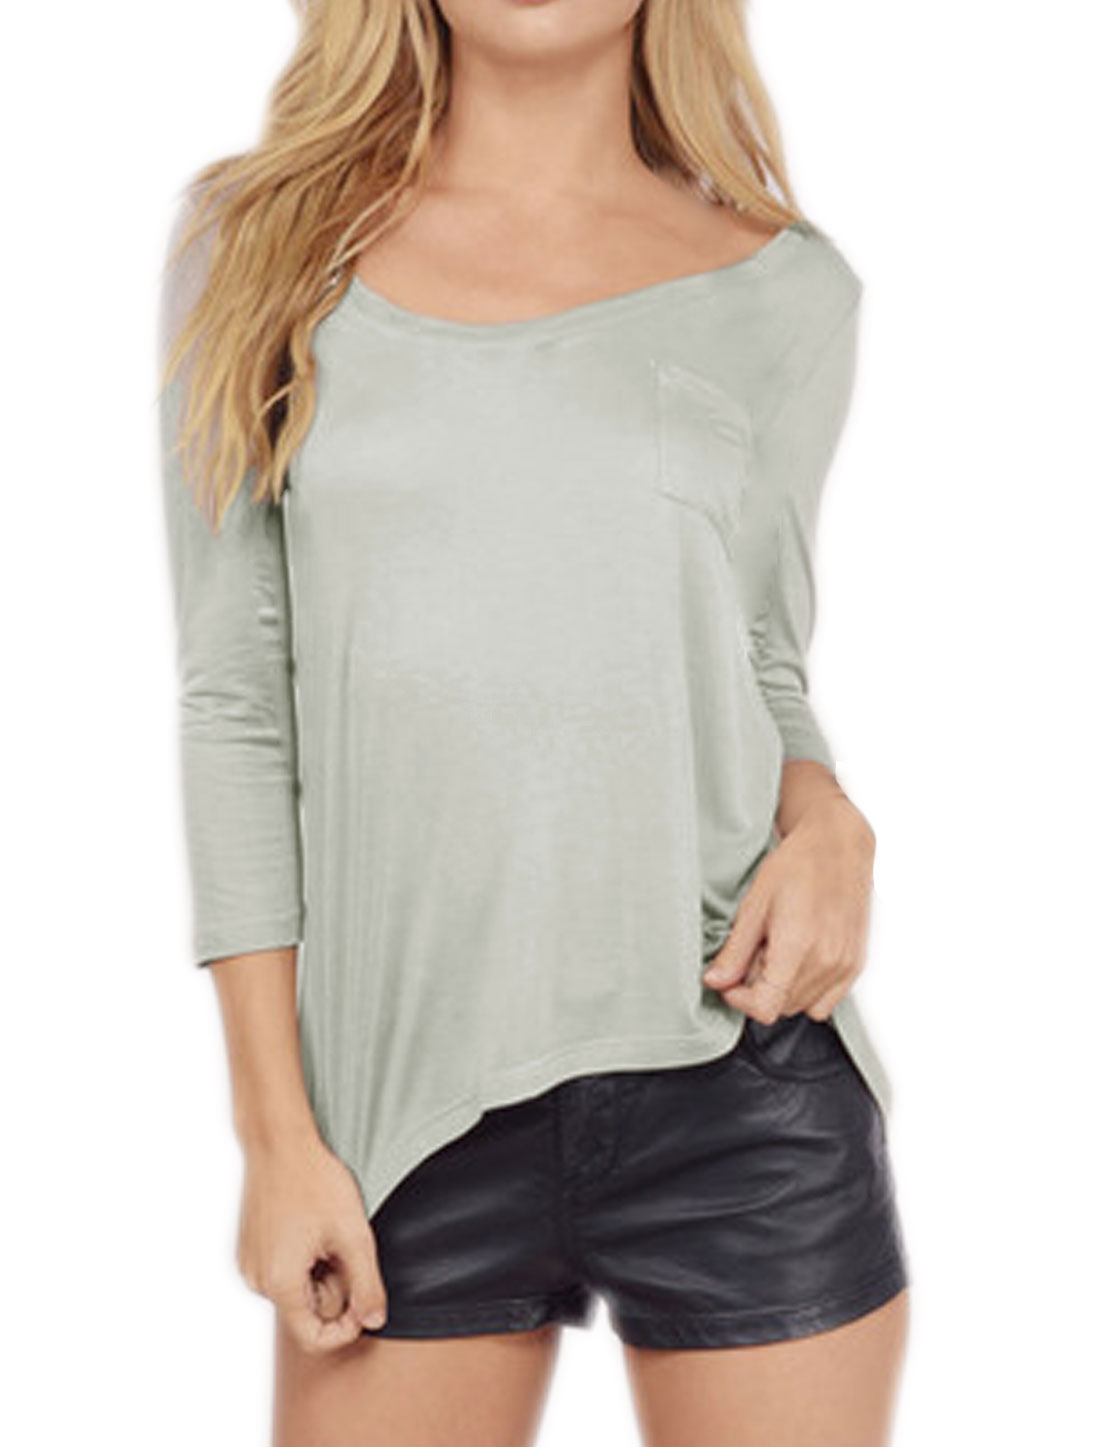 Woman Scoop Neck Long Sleeves Tee Shirt w Pocket Gray S